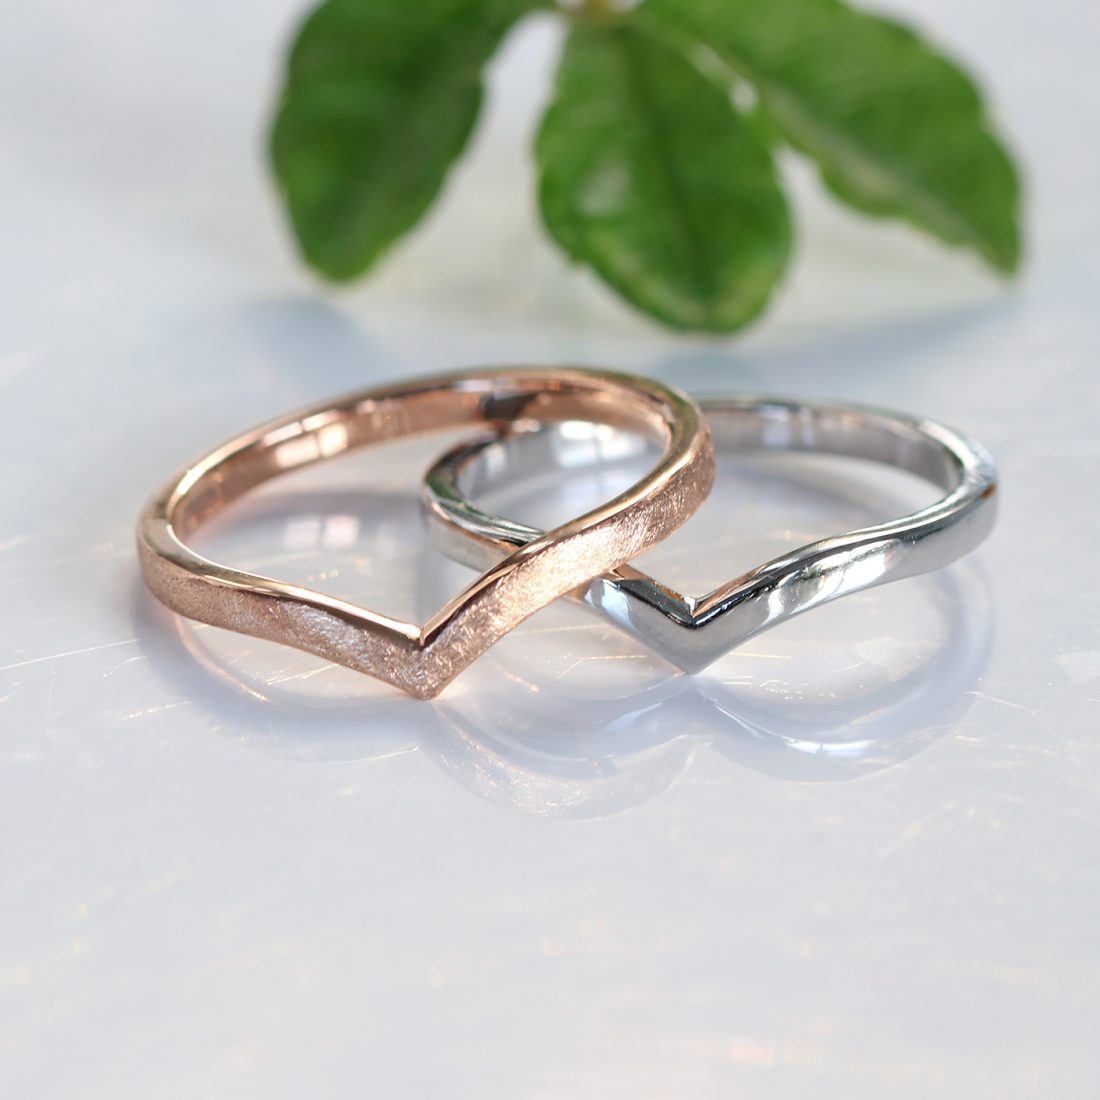 18ct gold, white gold, rose gold or platinum wishbone wedding rings with a choice of 5 finishes.